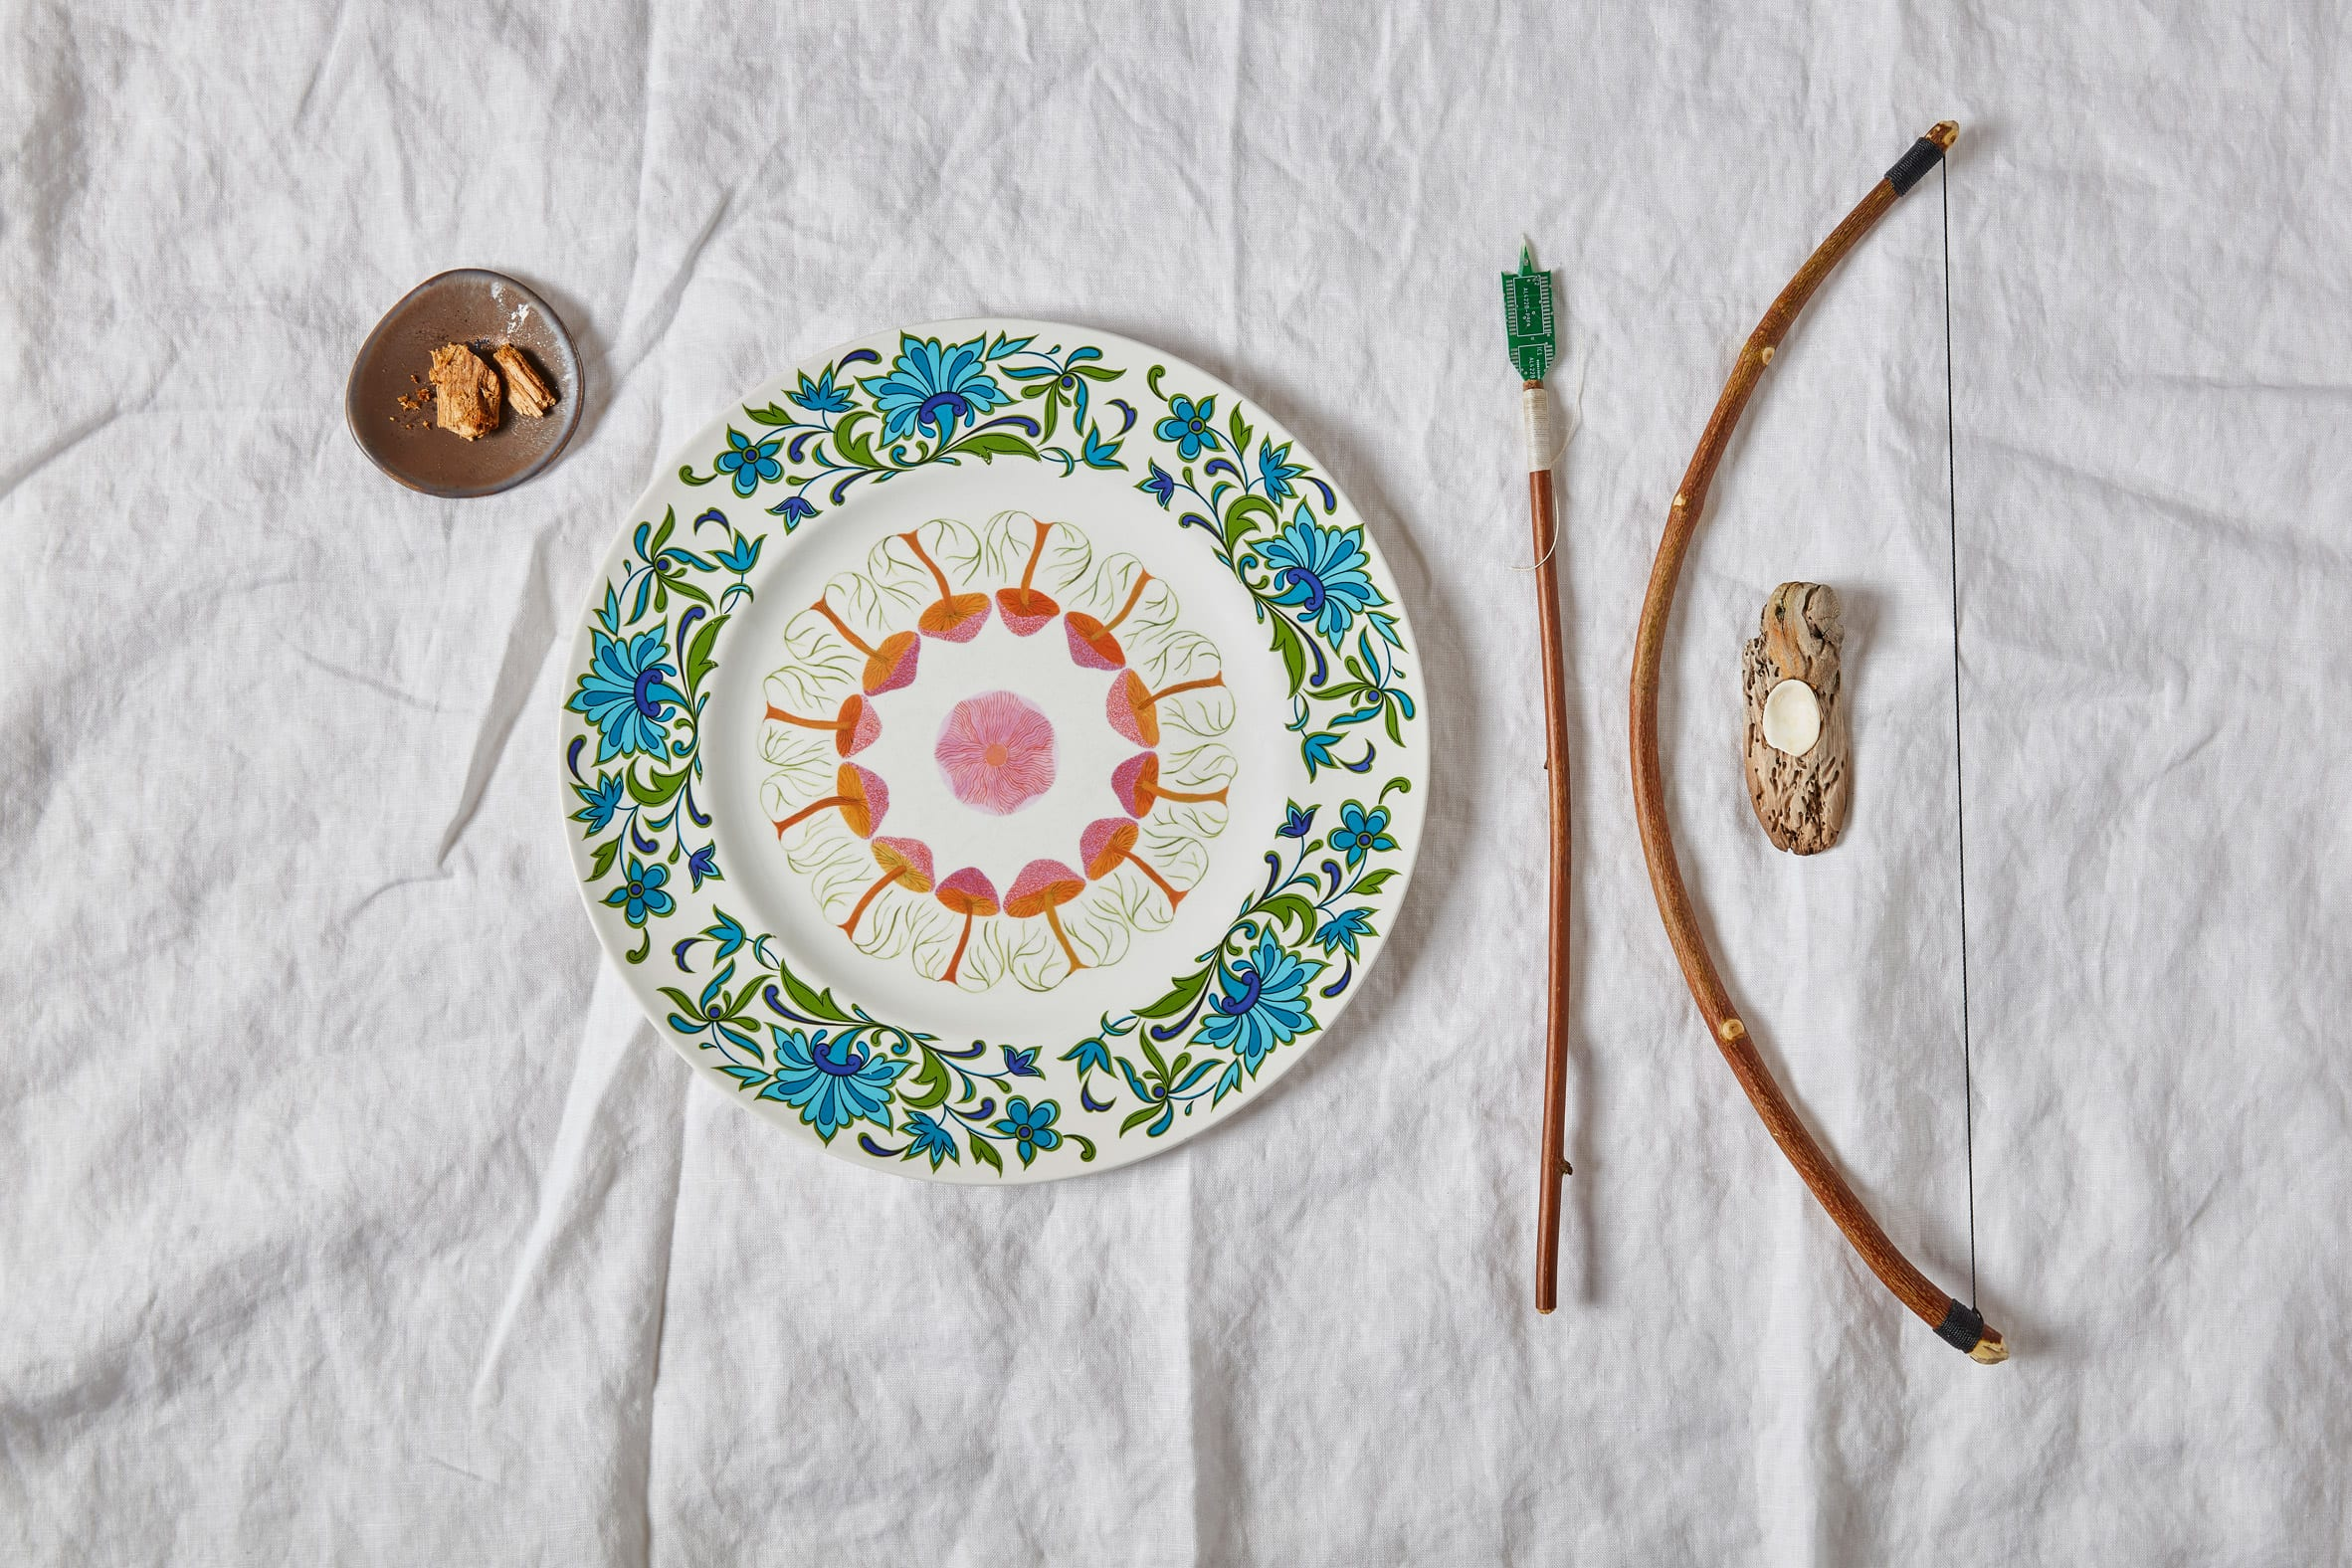 Close up of bespoke cutlery and colourful painted tableware from Refuge for Resurgence project